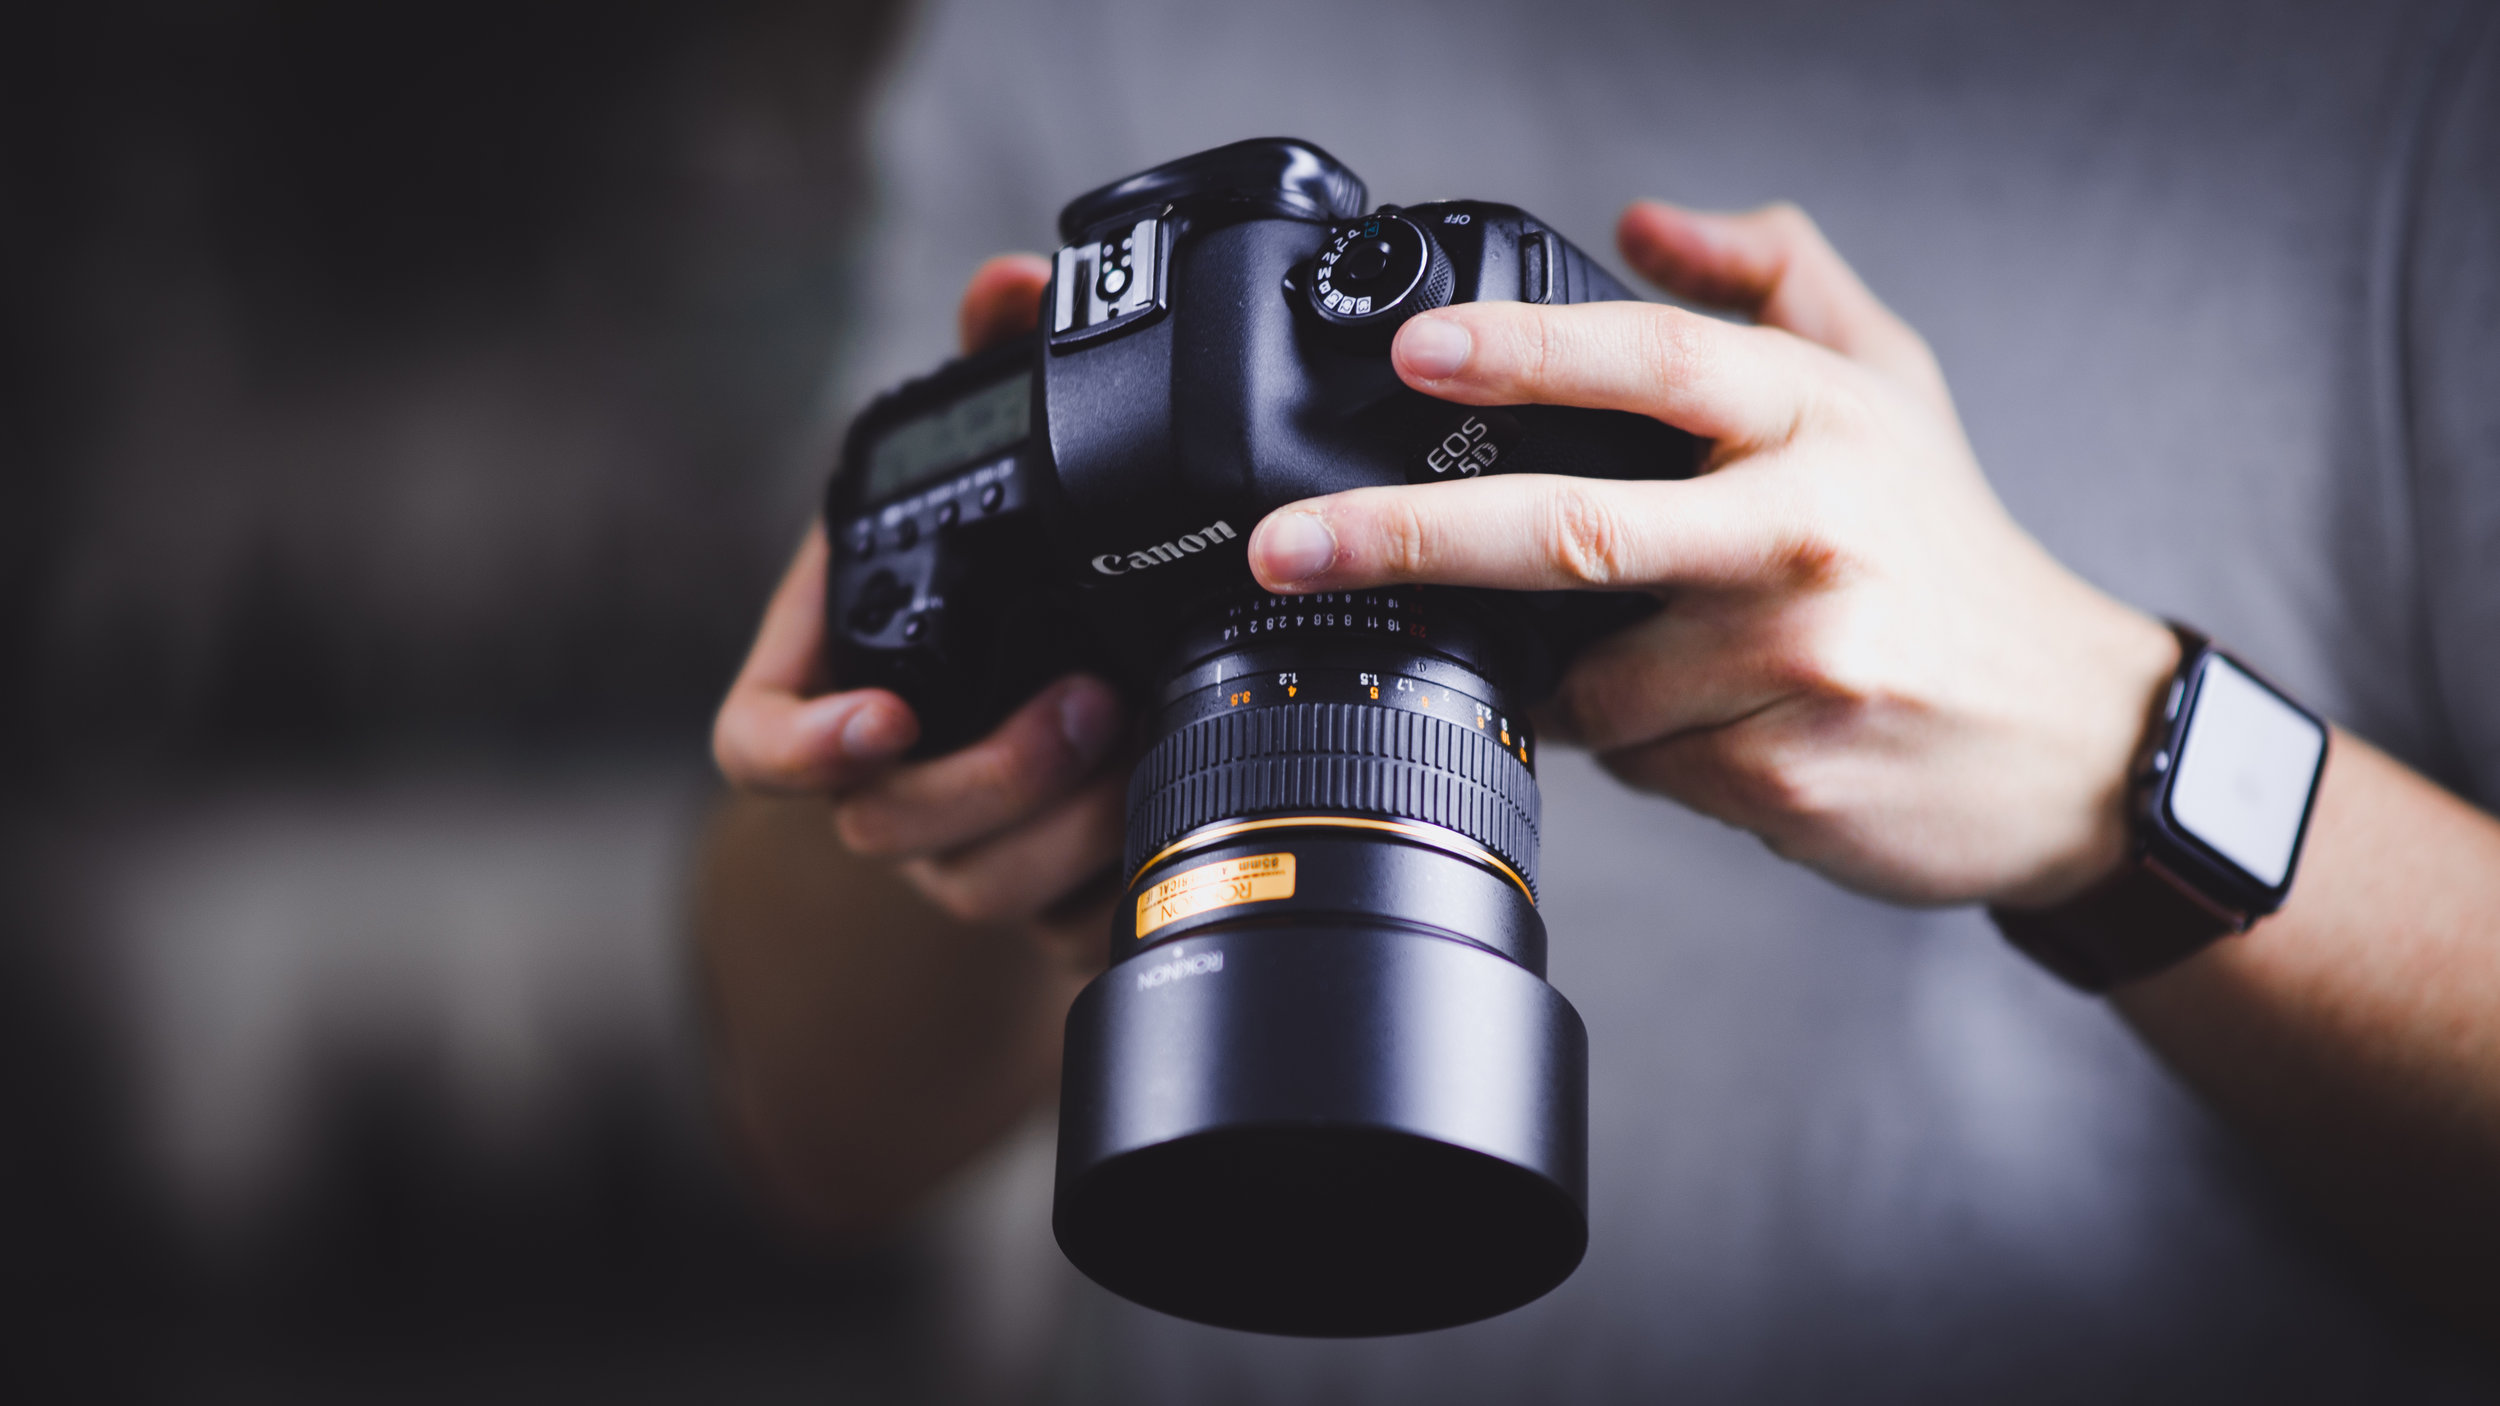 We know a thing or two about photography. - Being a company of many talents, our team is skilled in both the art of photography & cinematography.